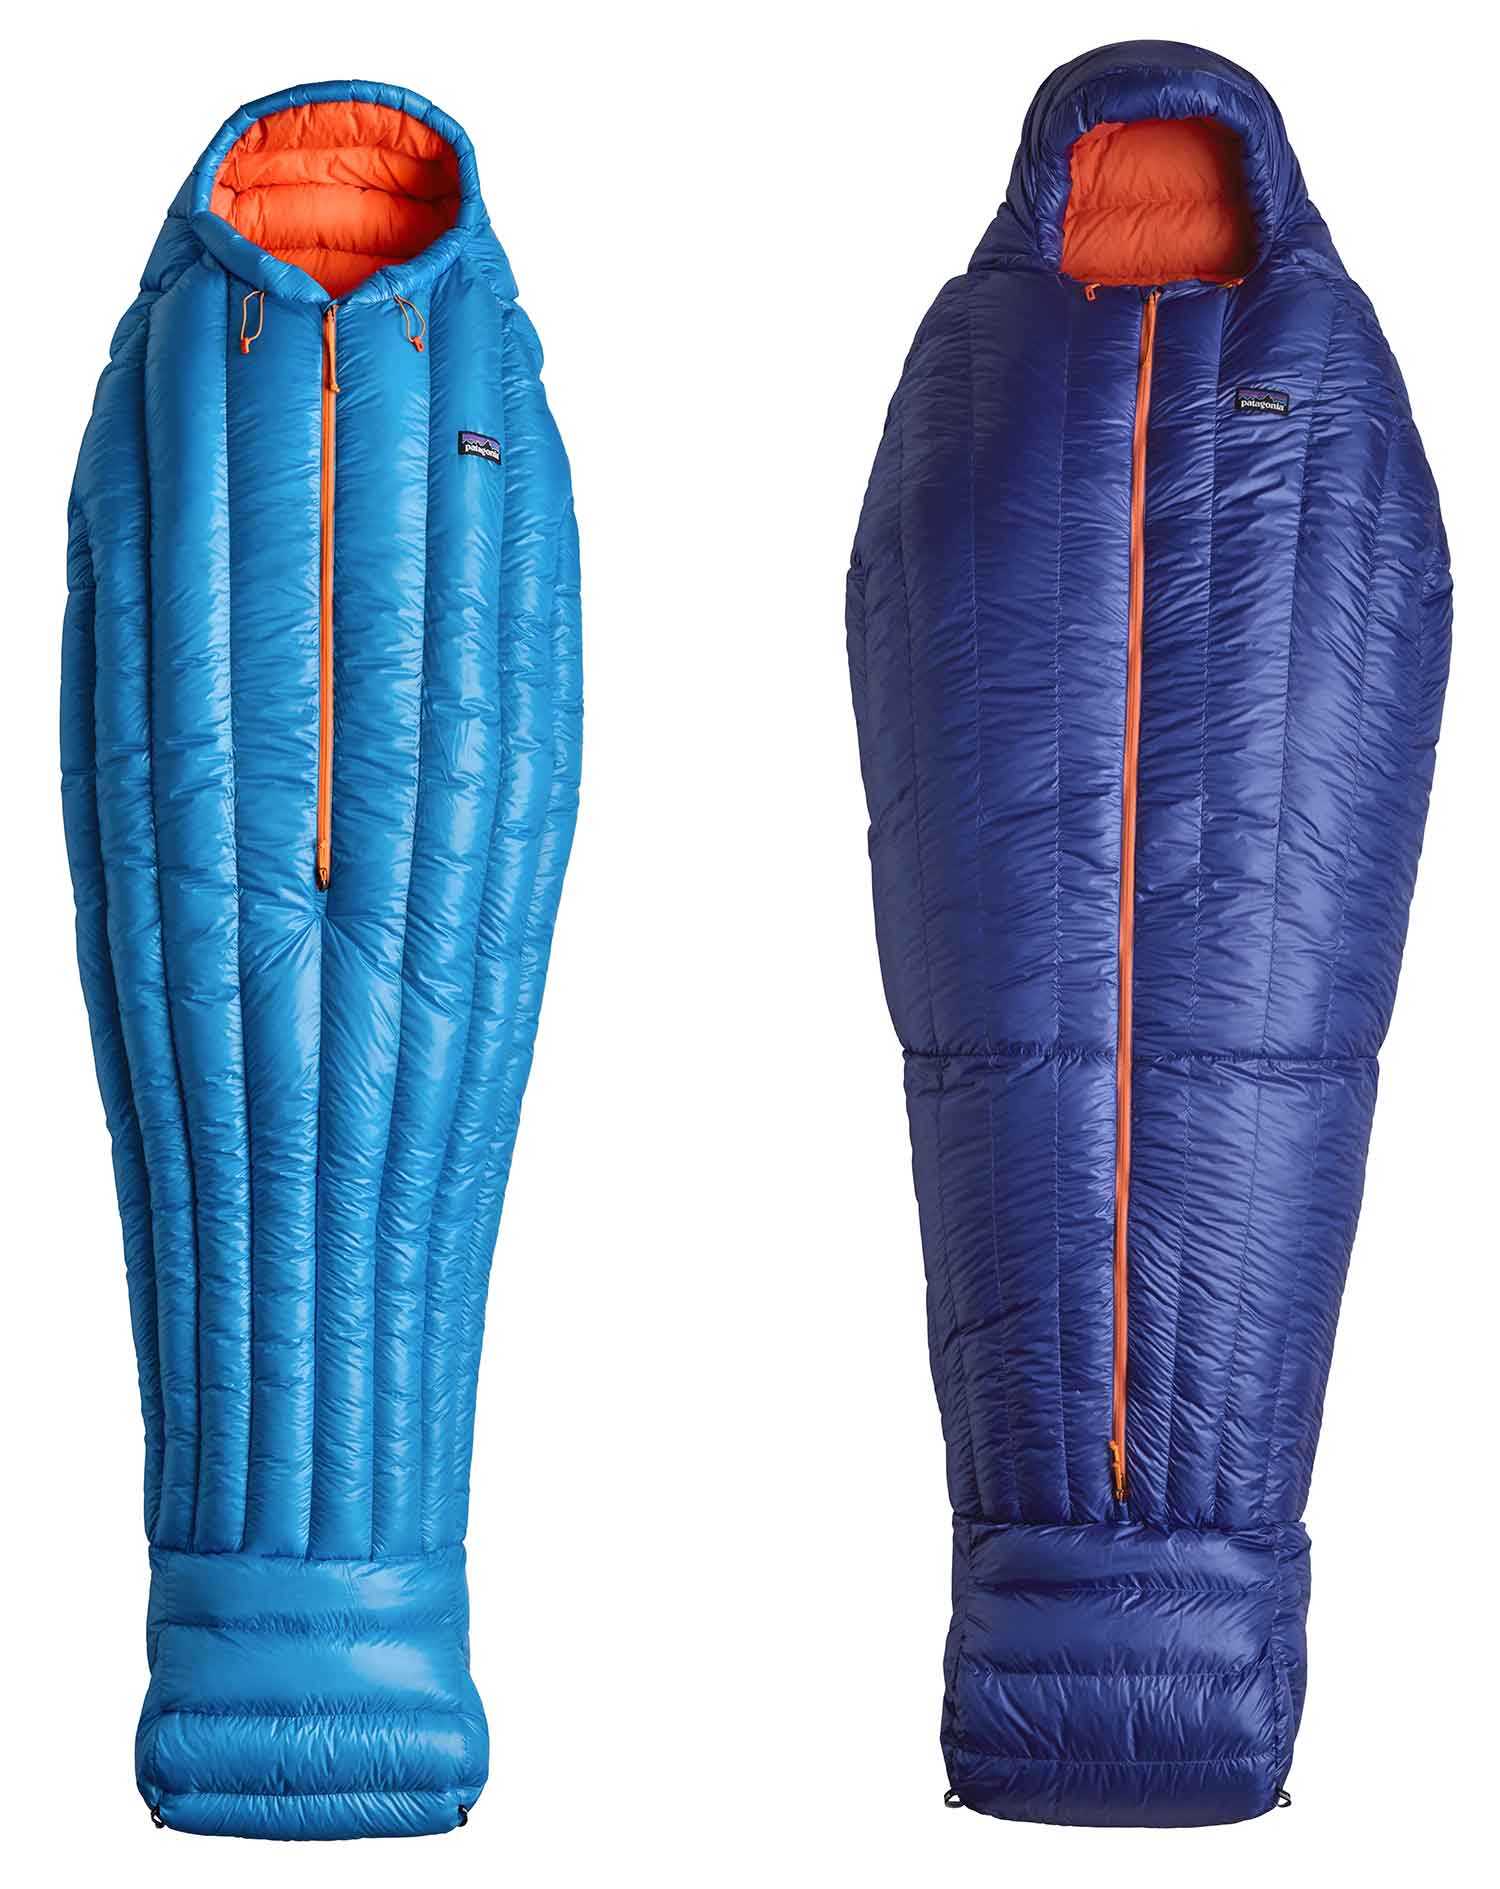 Tested: Patagonia's First Sleeping Bags